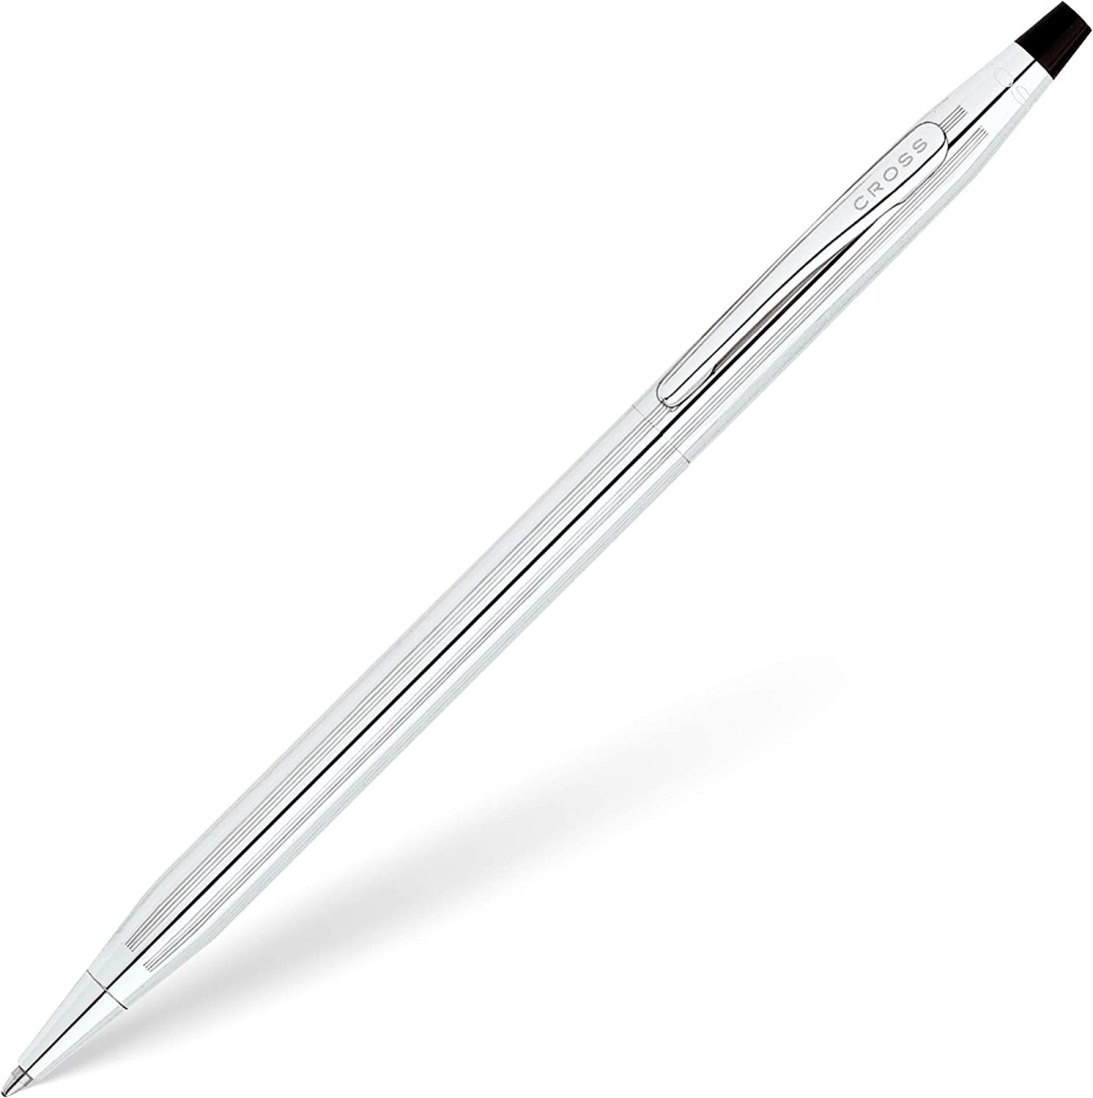 Best Pens For Gift | 15+ Beautiful Pens for gifts [2020] 5